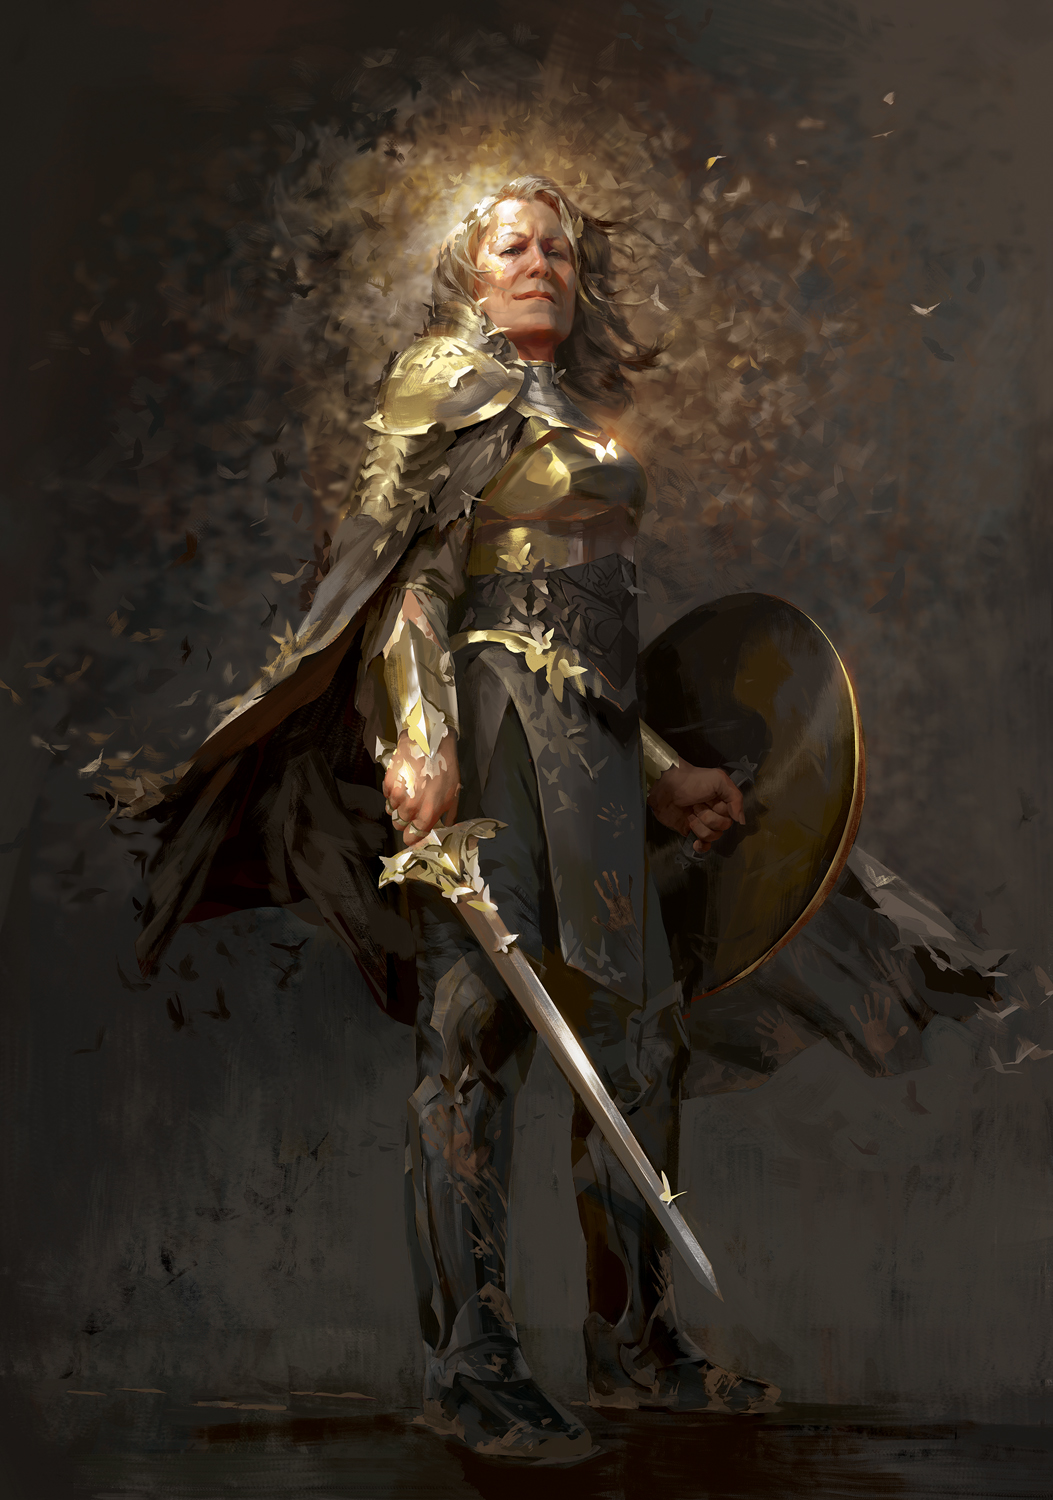 The Butterfly Knight Artwork by Cassandre Bolan